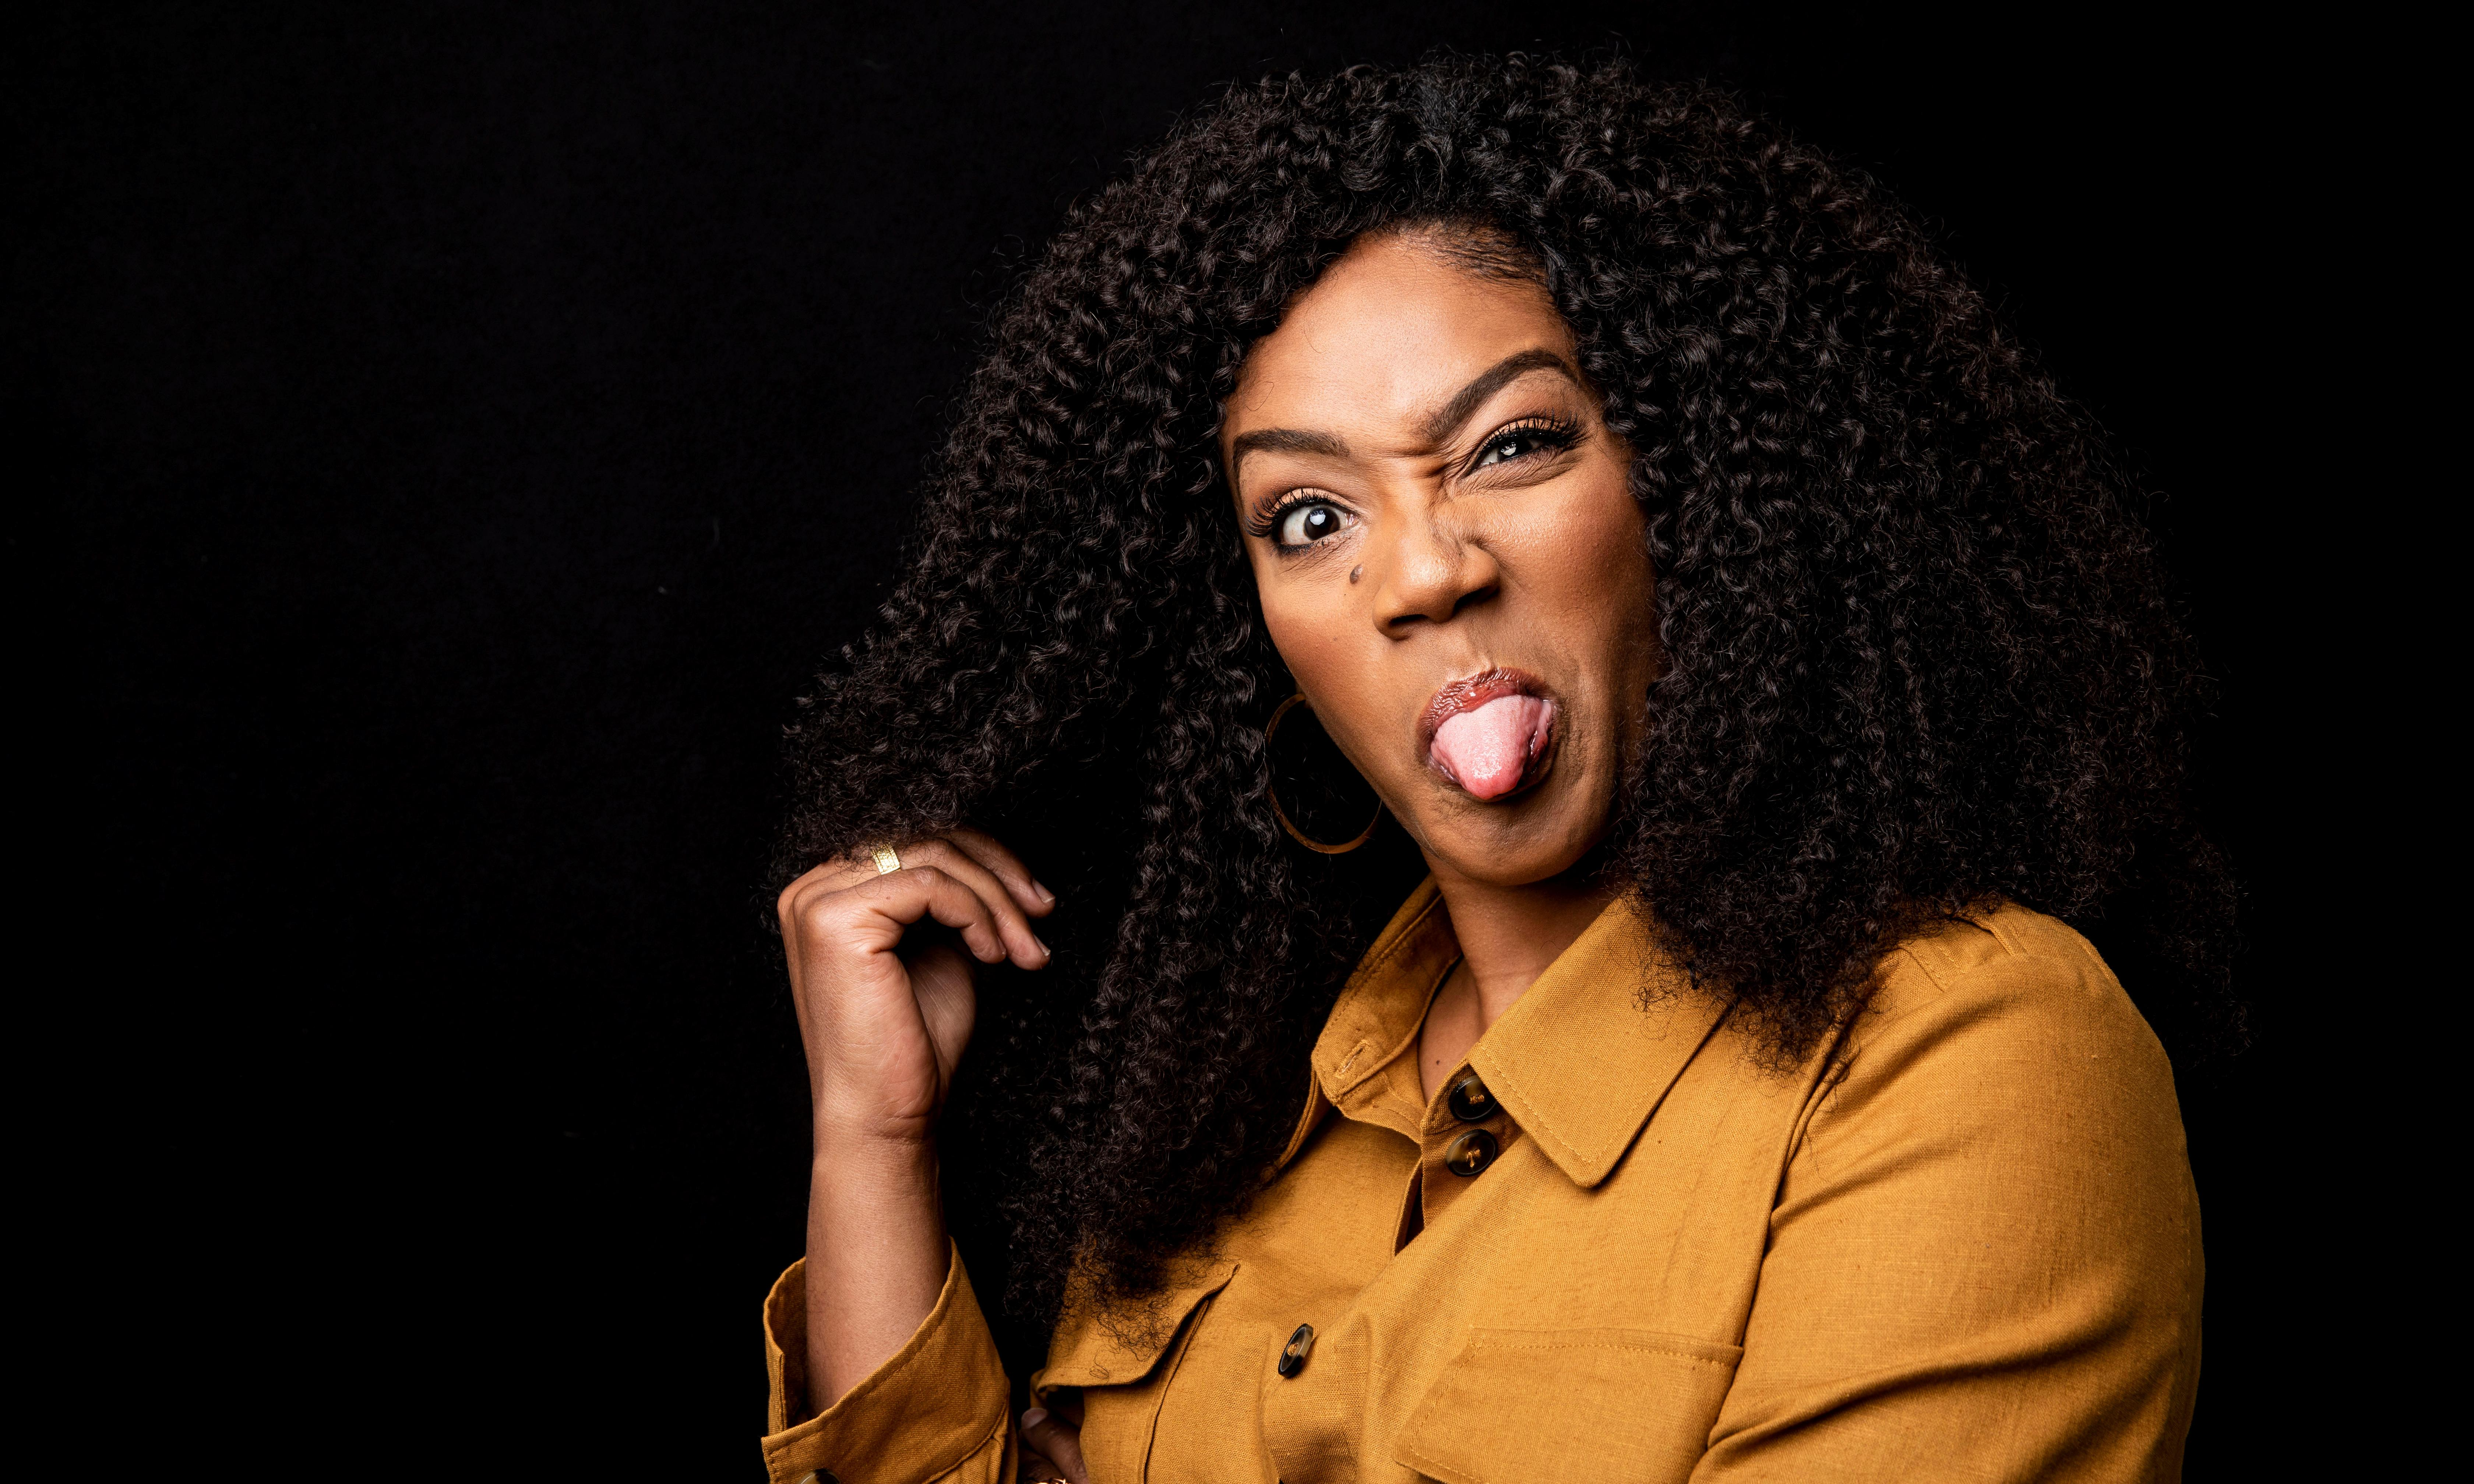 'The boys' club has been obliterated': meet the women of colour shaking up comedy